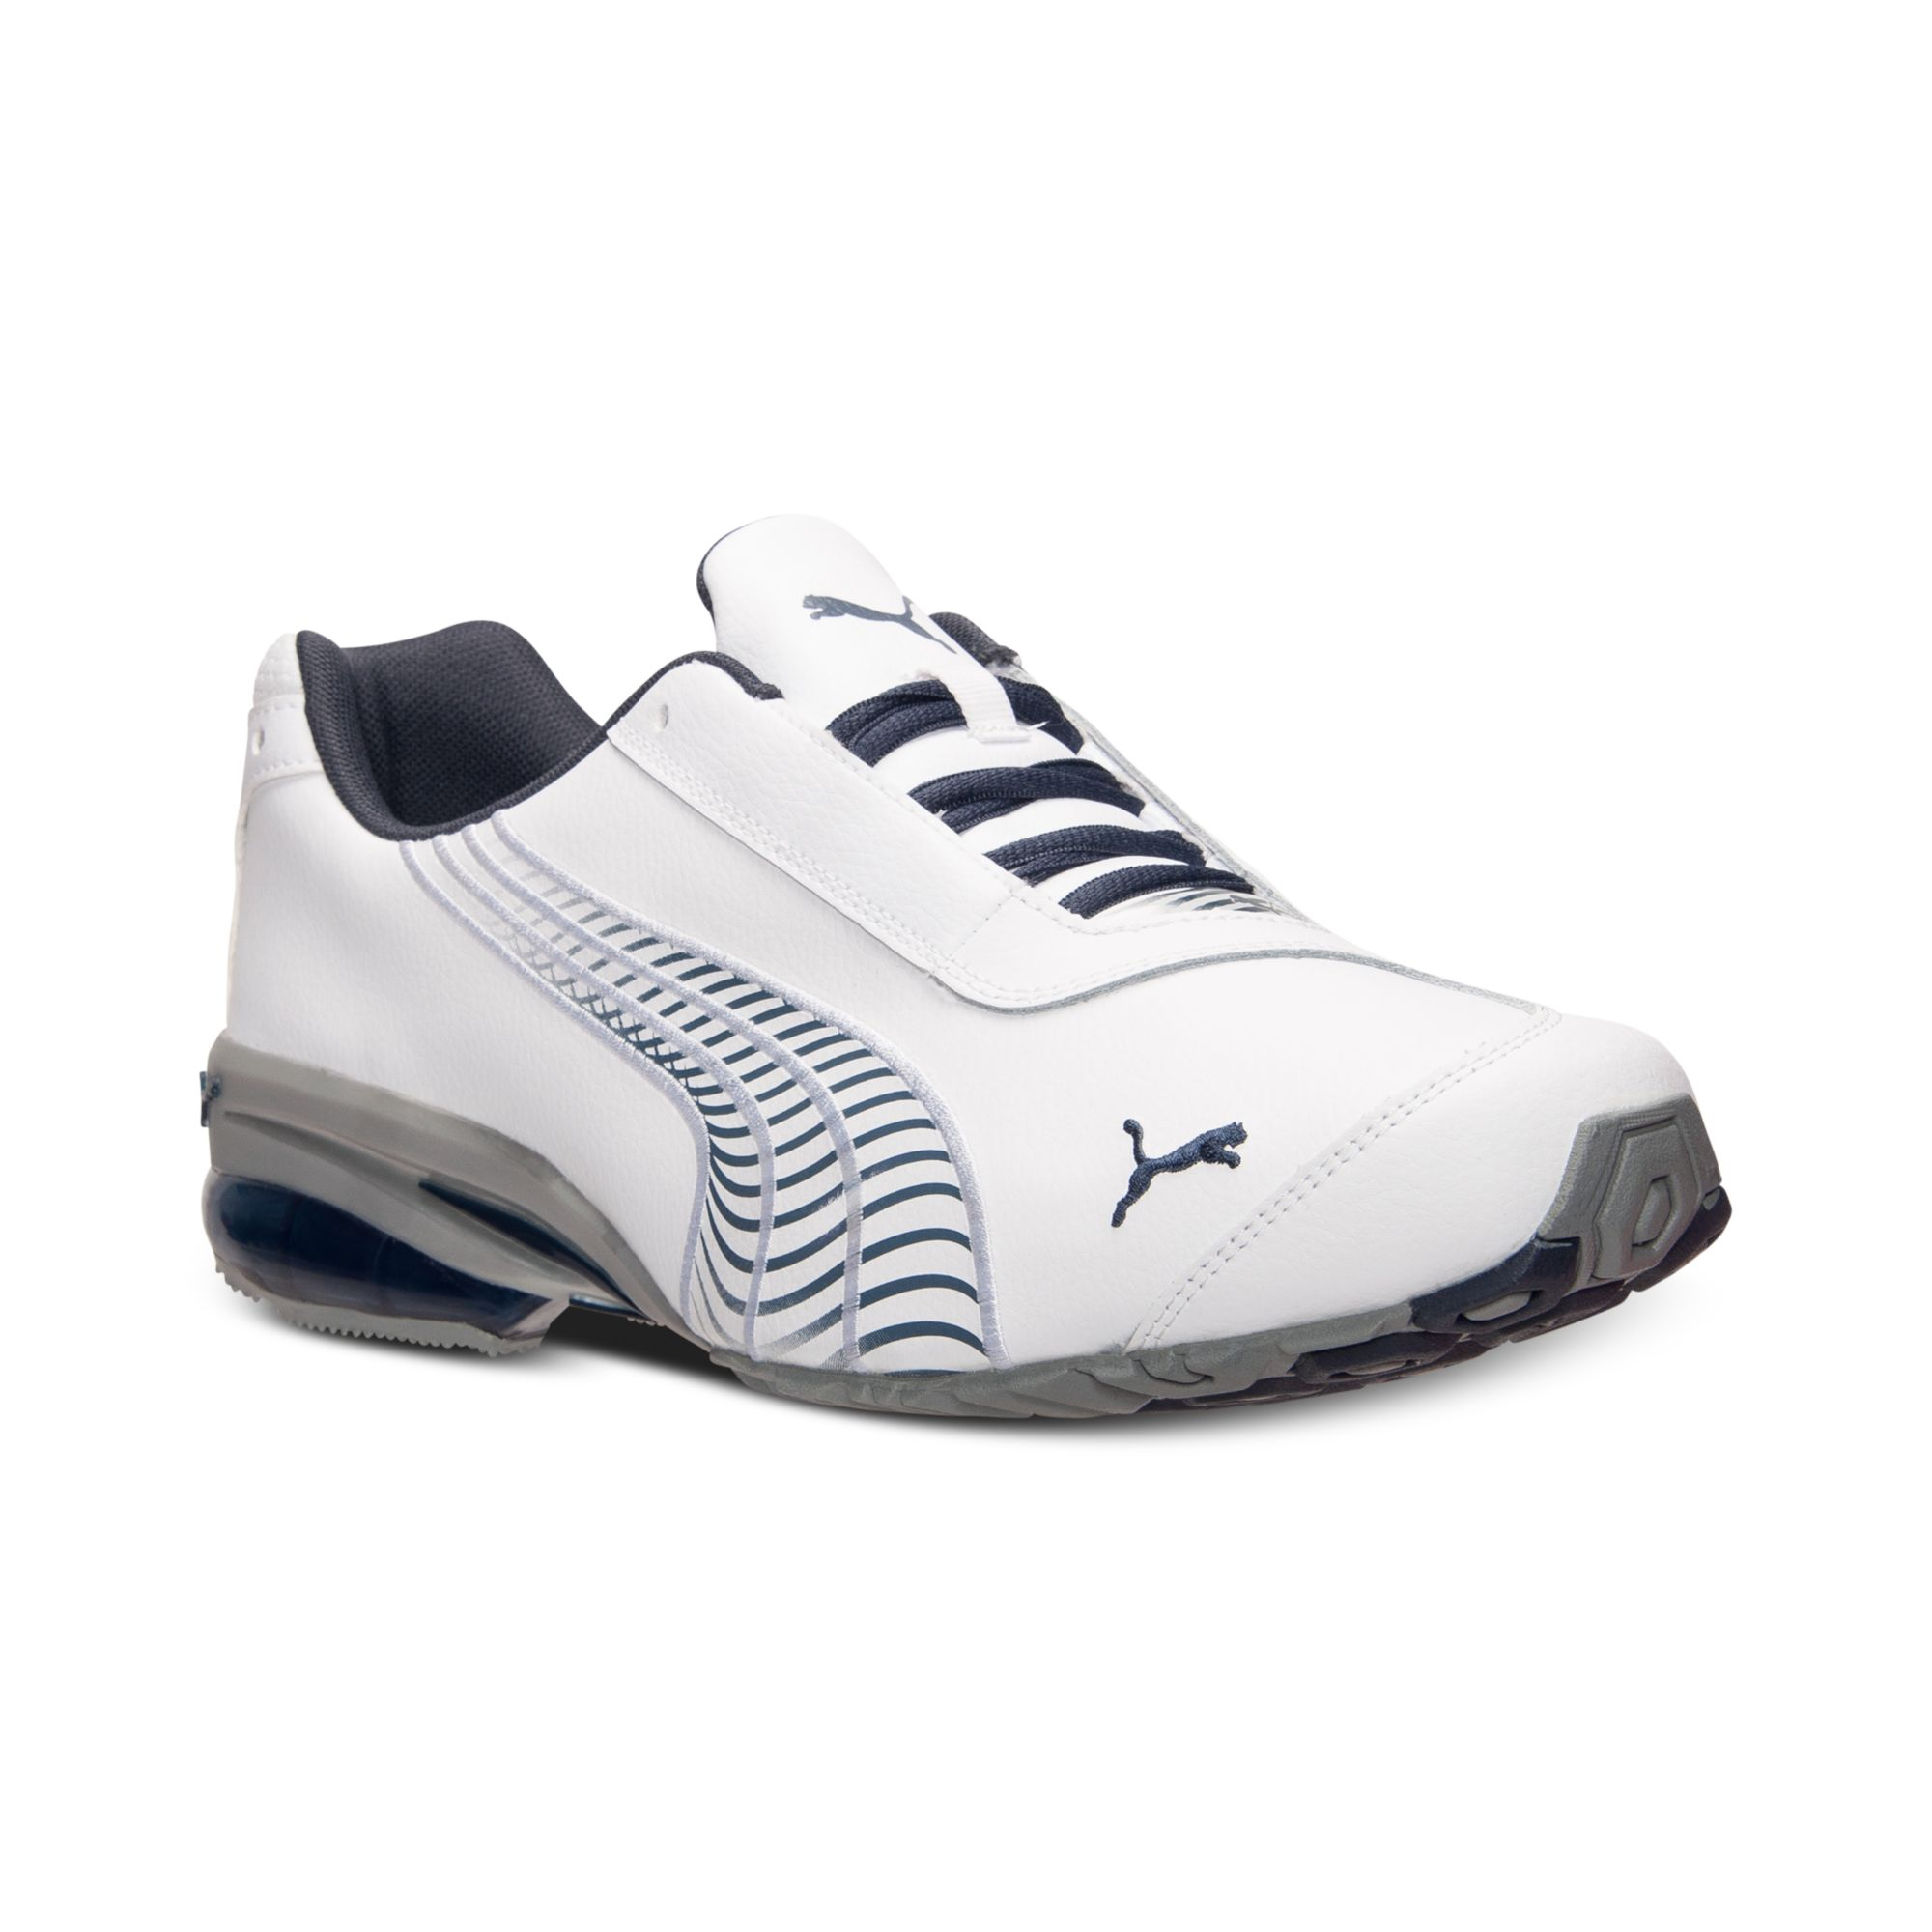 2e8a68f1c65 sweden puma running shoes for men dfe56 cb24e  ireland lyst puma mens cell  jago 8 running sneakers from finish line in 3af5e e1e0a